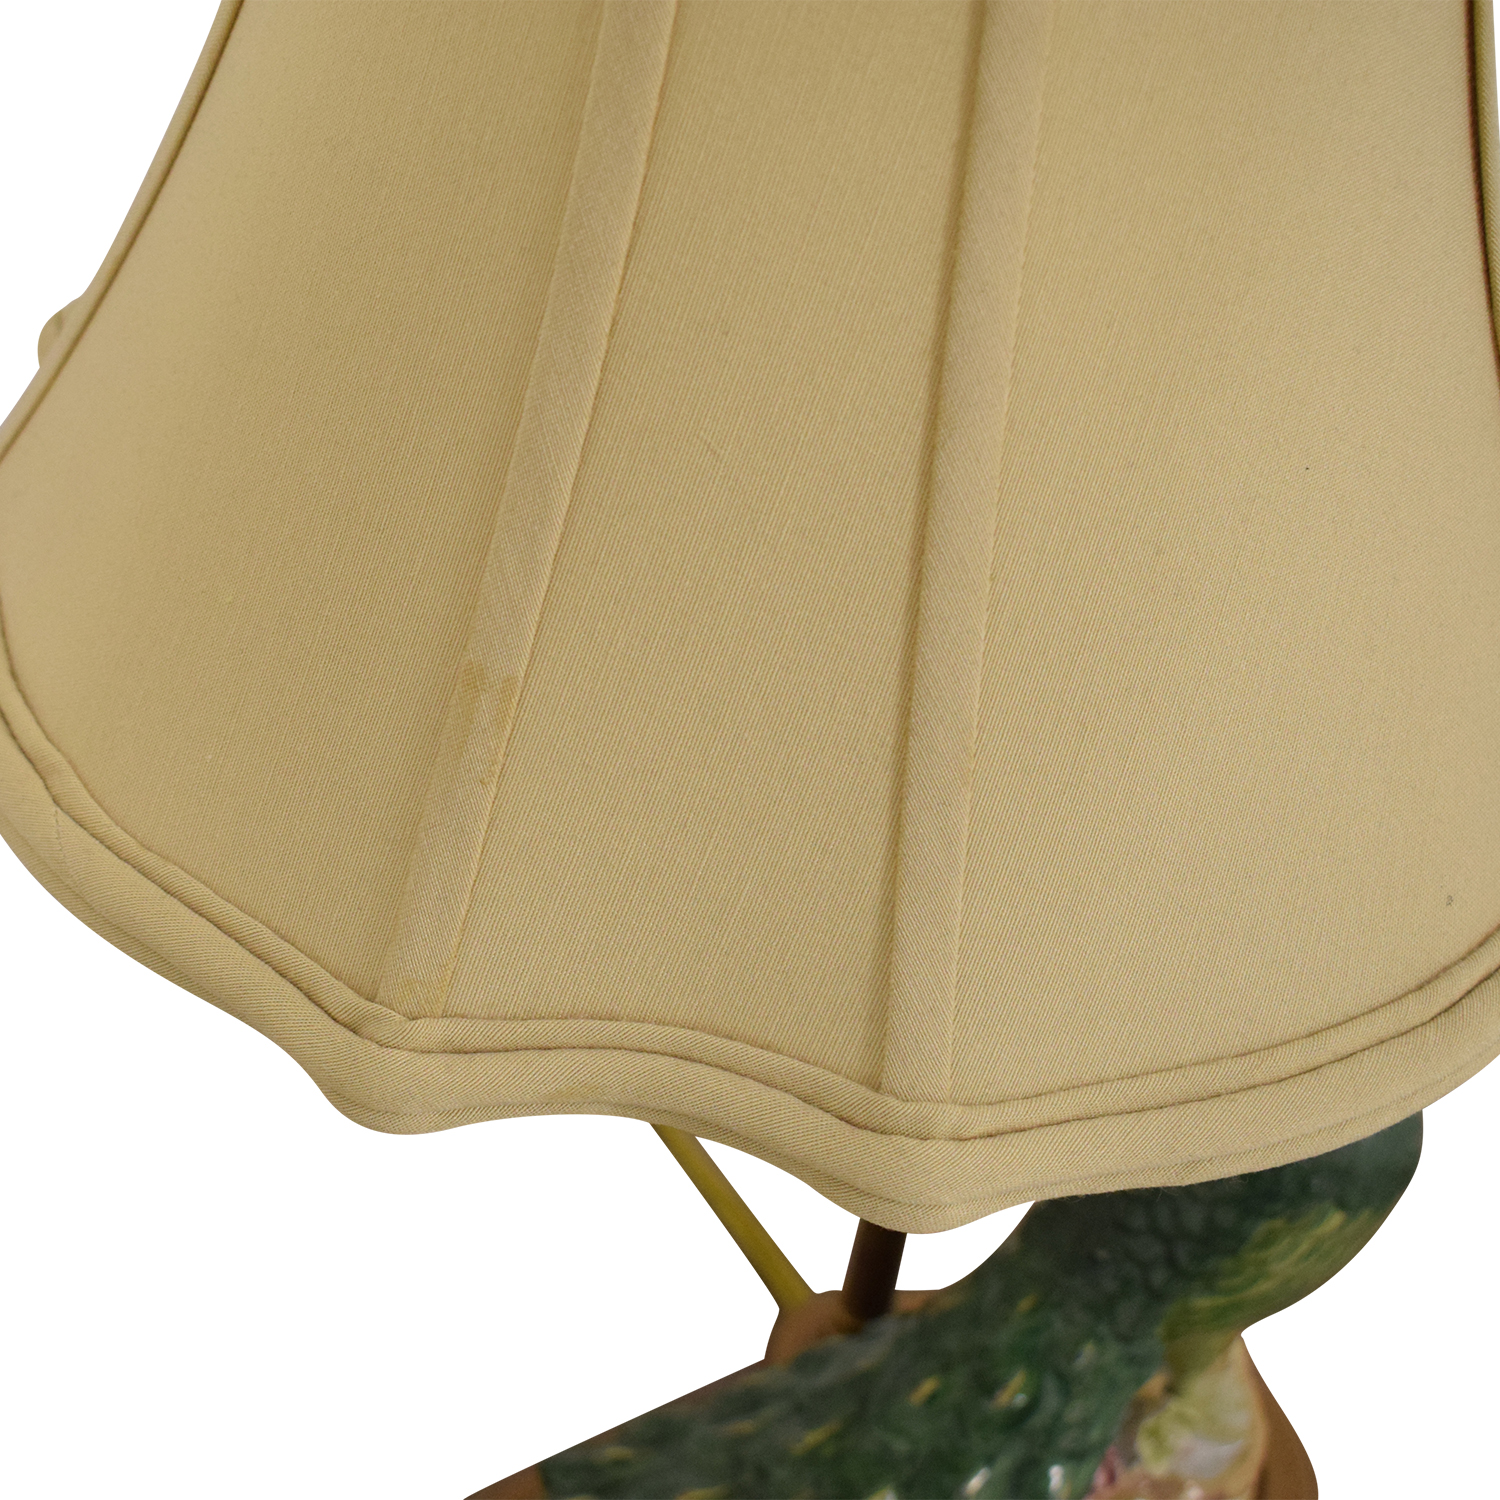 Ethan Allen Decorative Table Lamps / Lamps